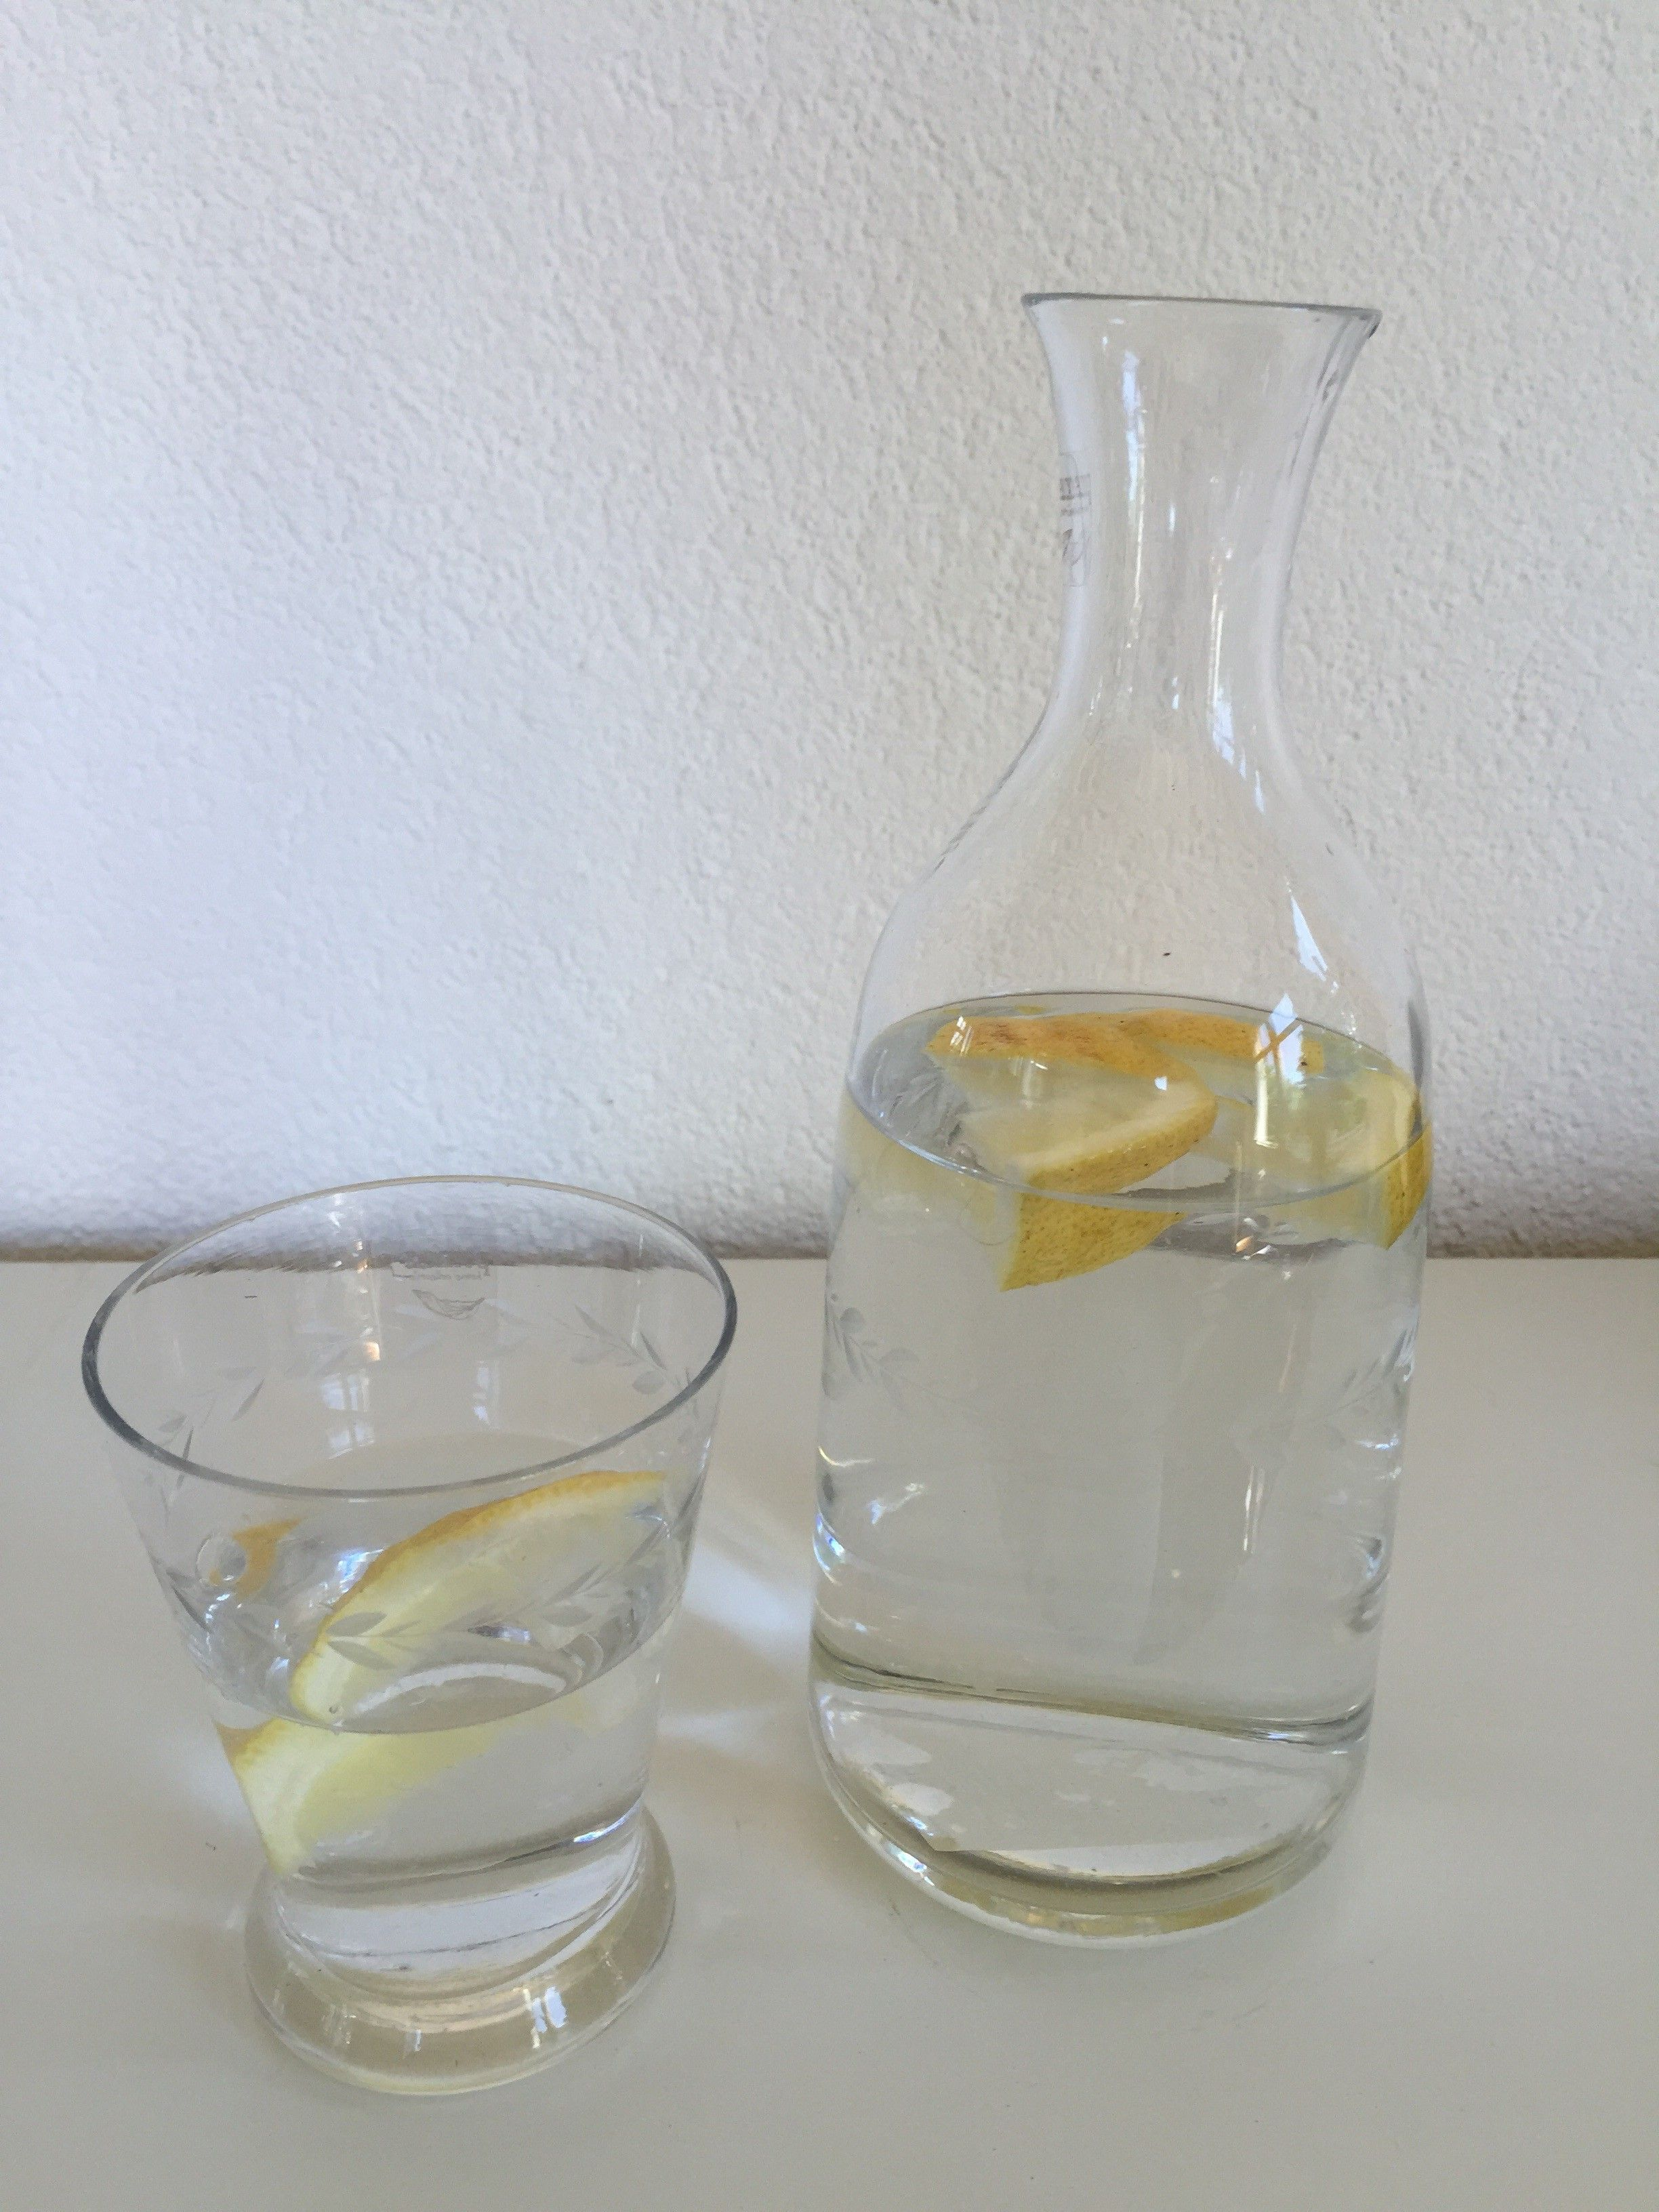 Bedside Water Carafe And Glass Bedside Water Carafe Set With Tumble Up Glass